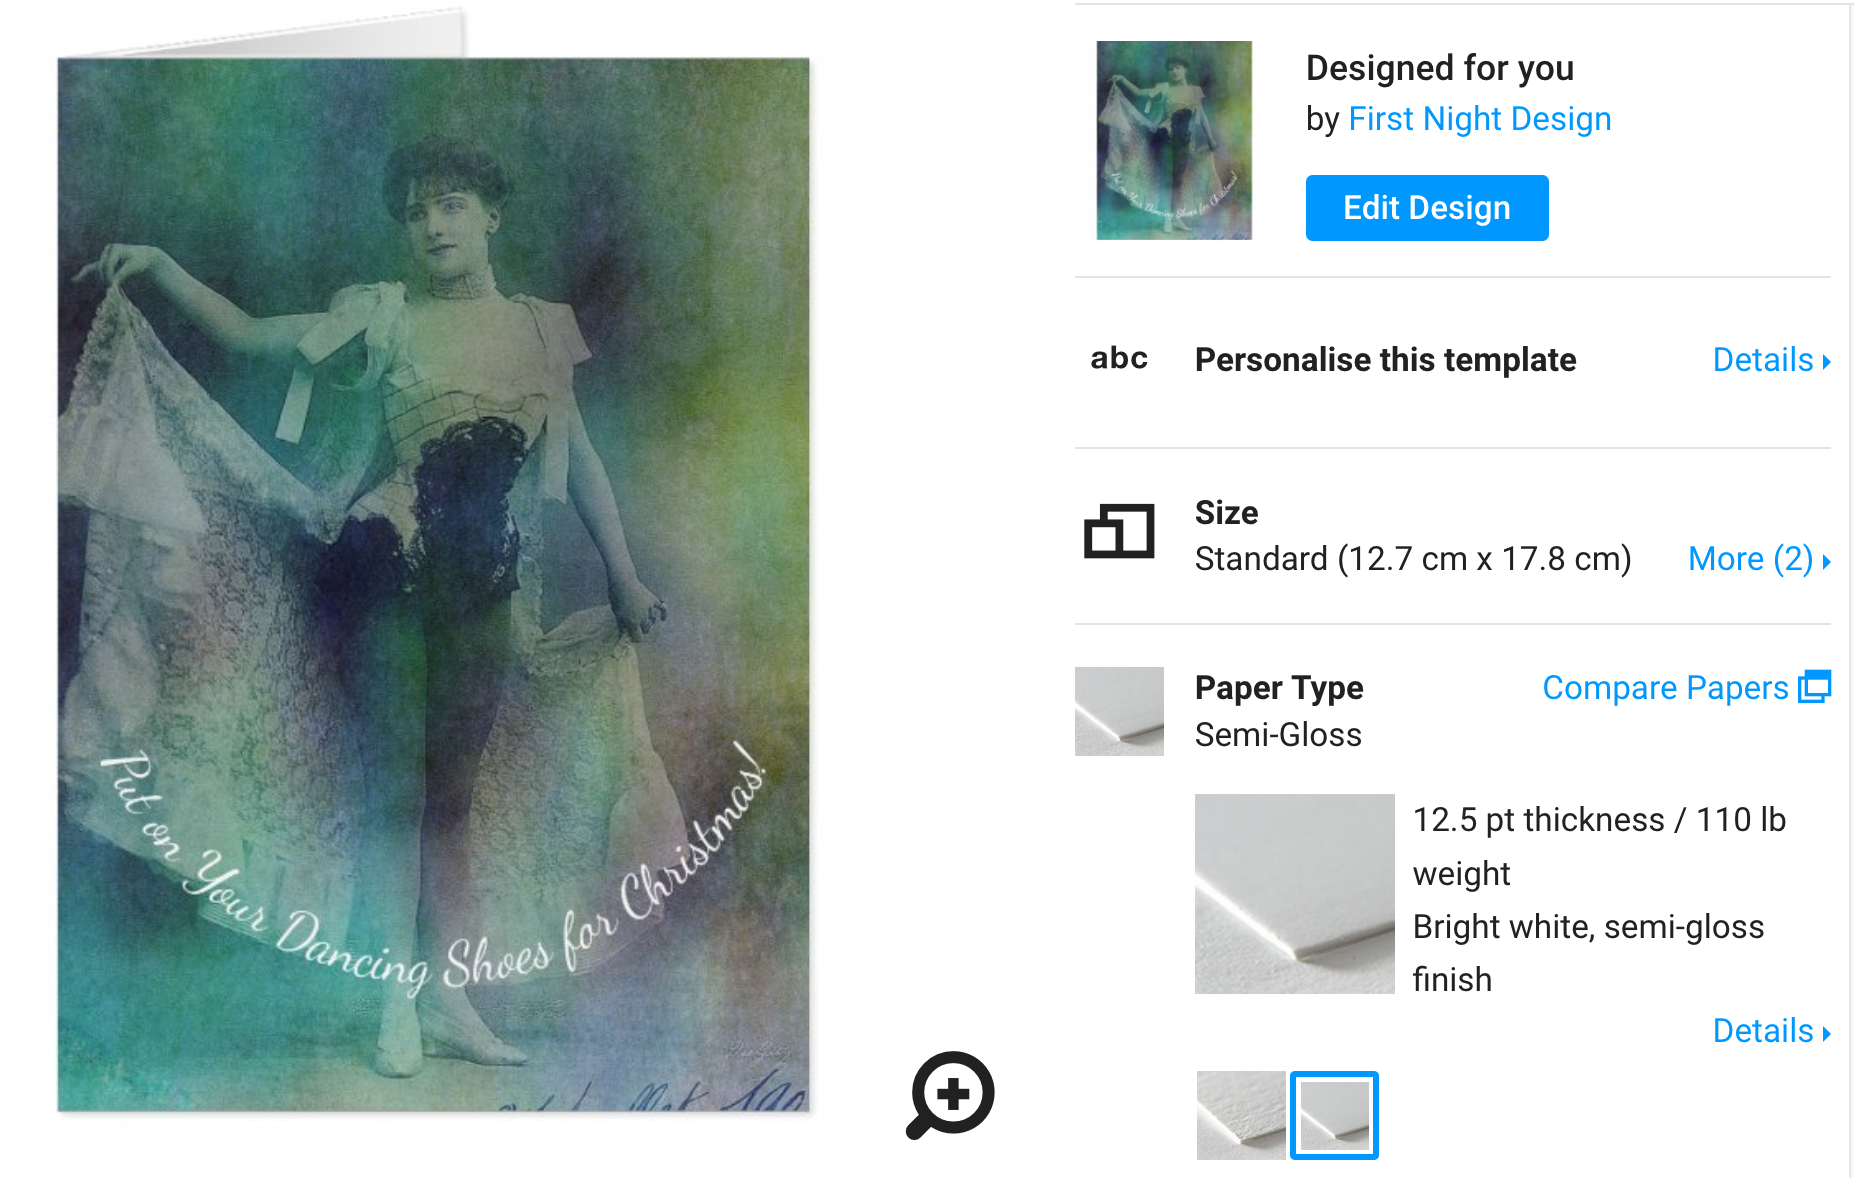 First Night Design | Syncopated Lady #Christmas Edition @ Zazzle #Art #New!